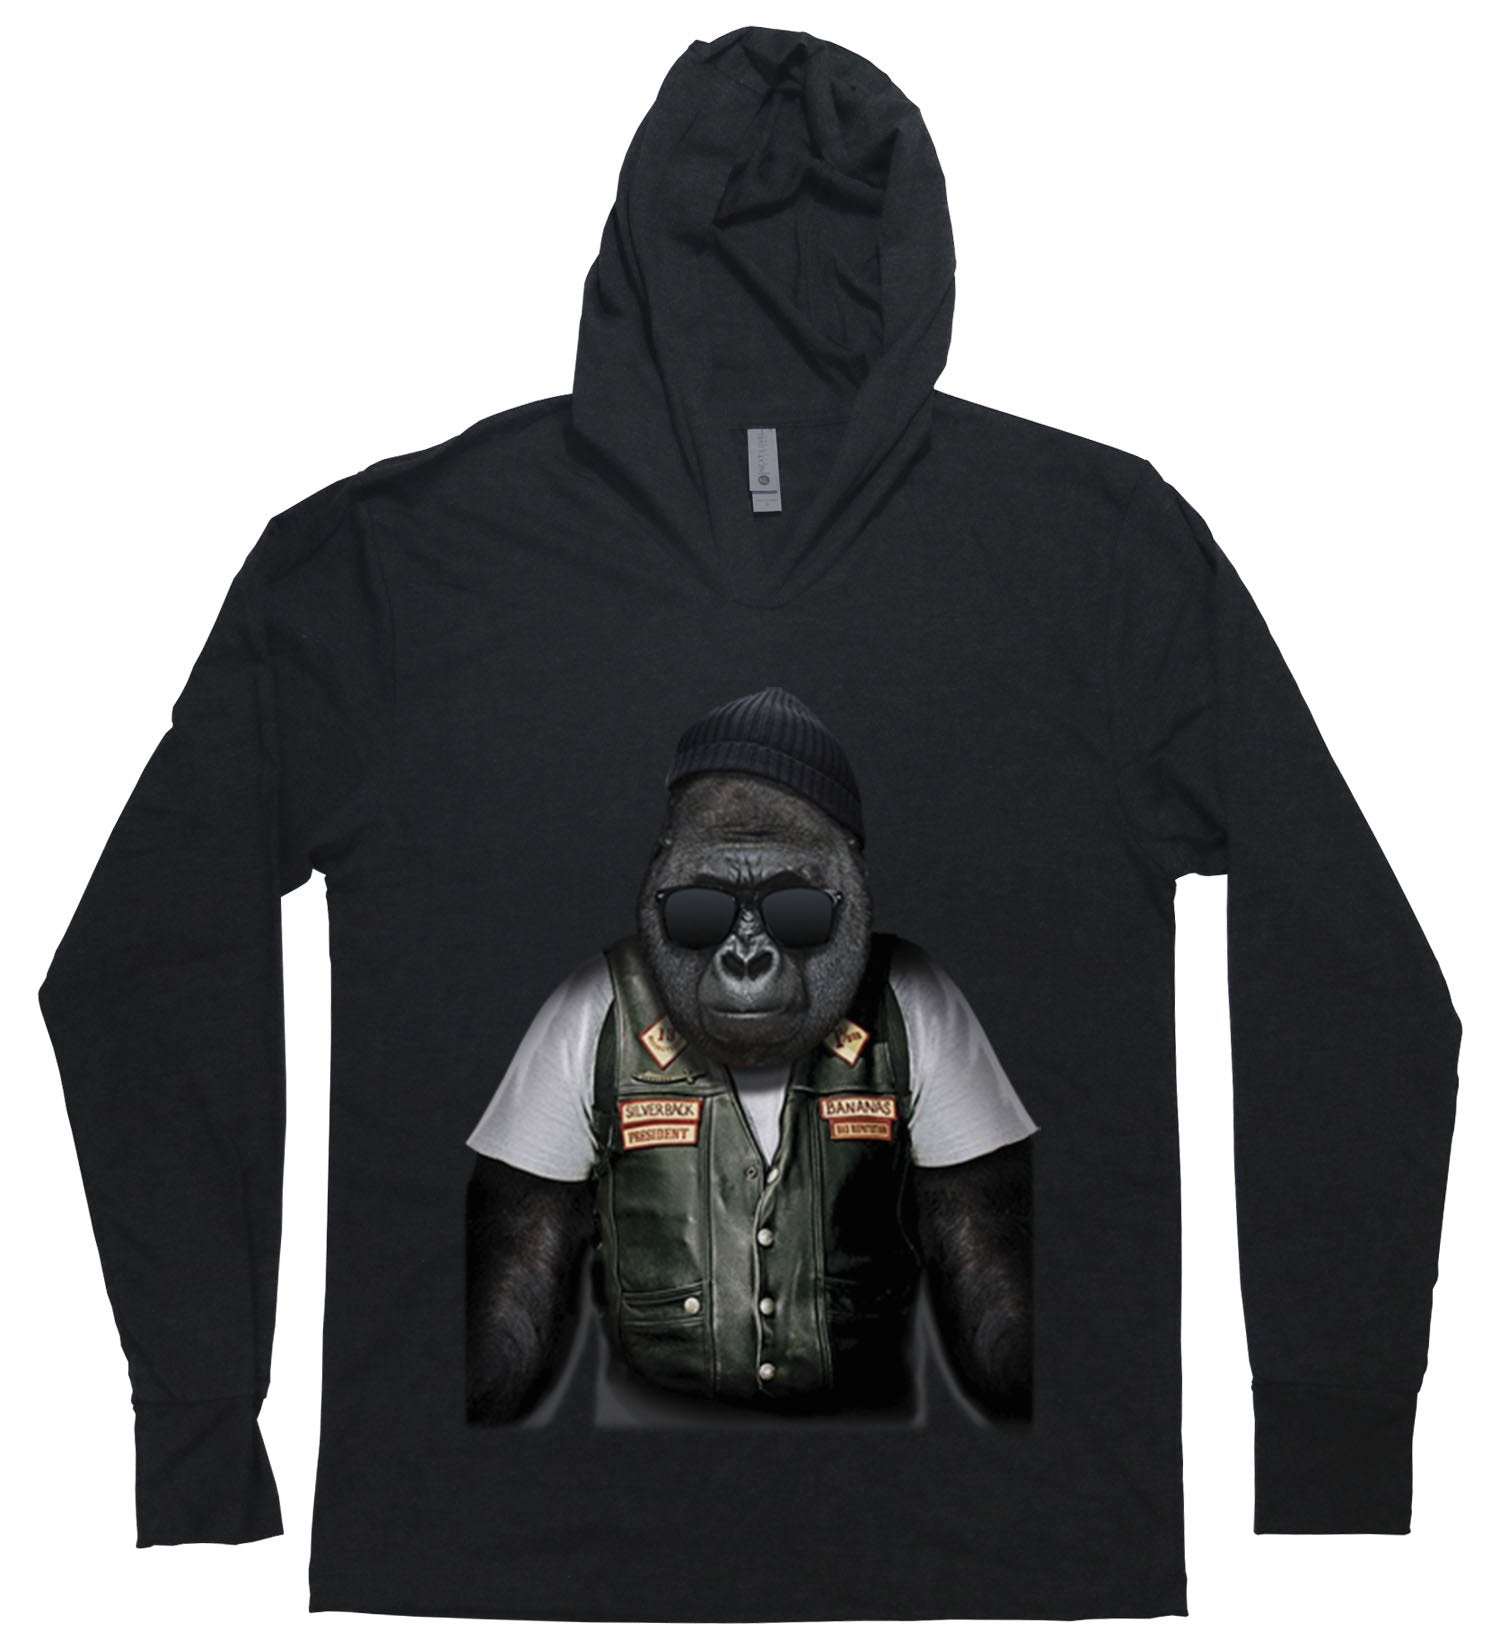 A gorilla dressed as a biker on a hooded long sleeved t-shirt